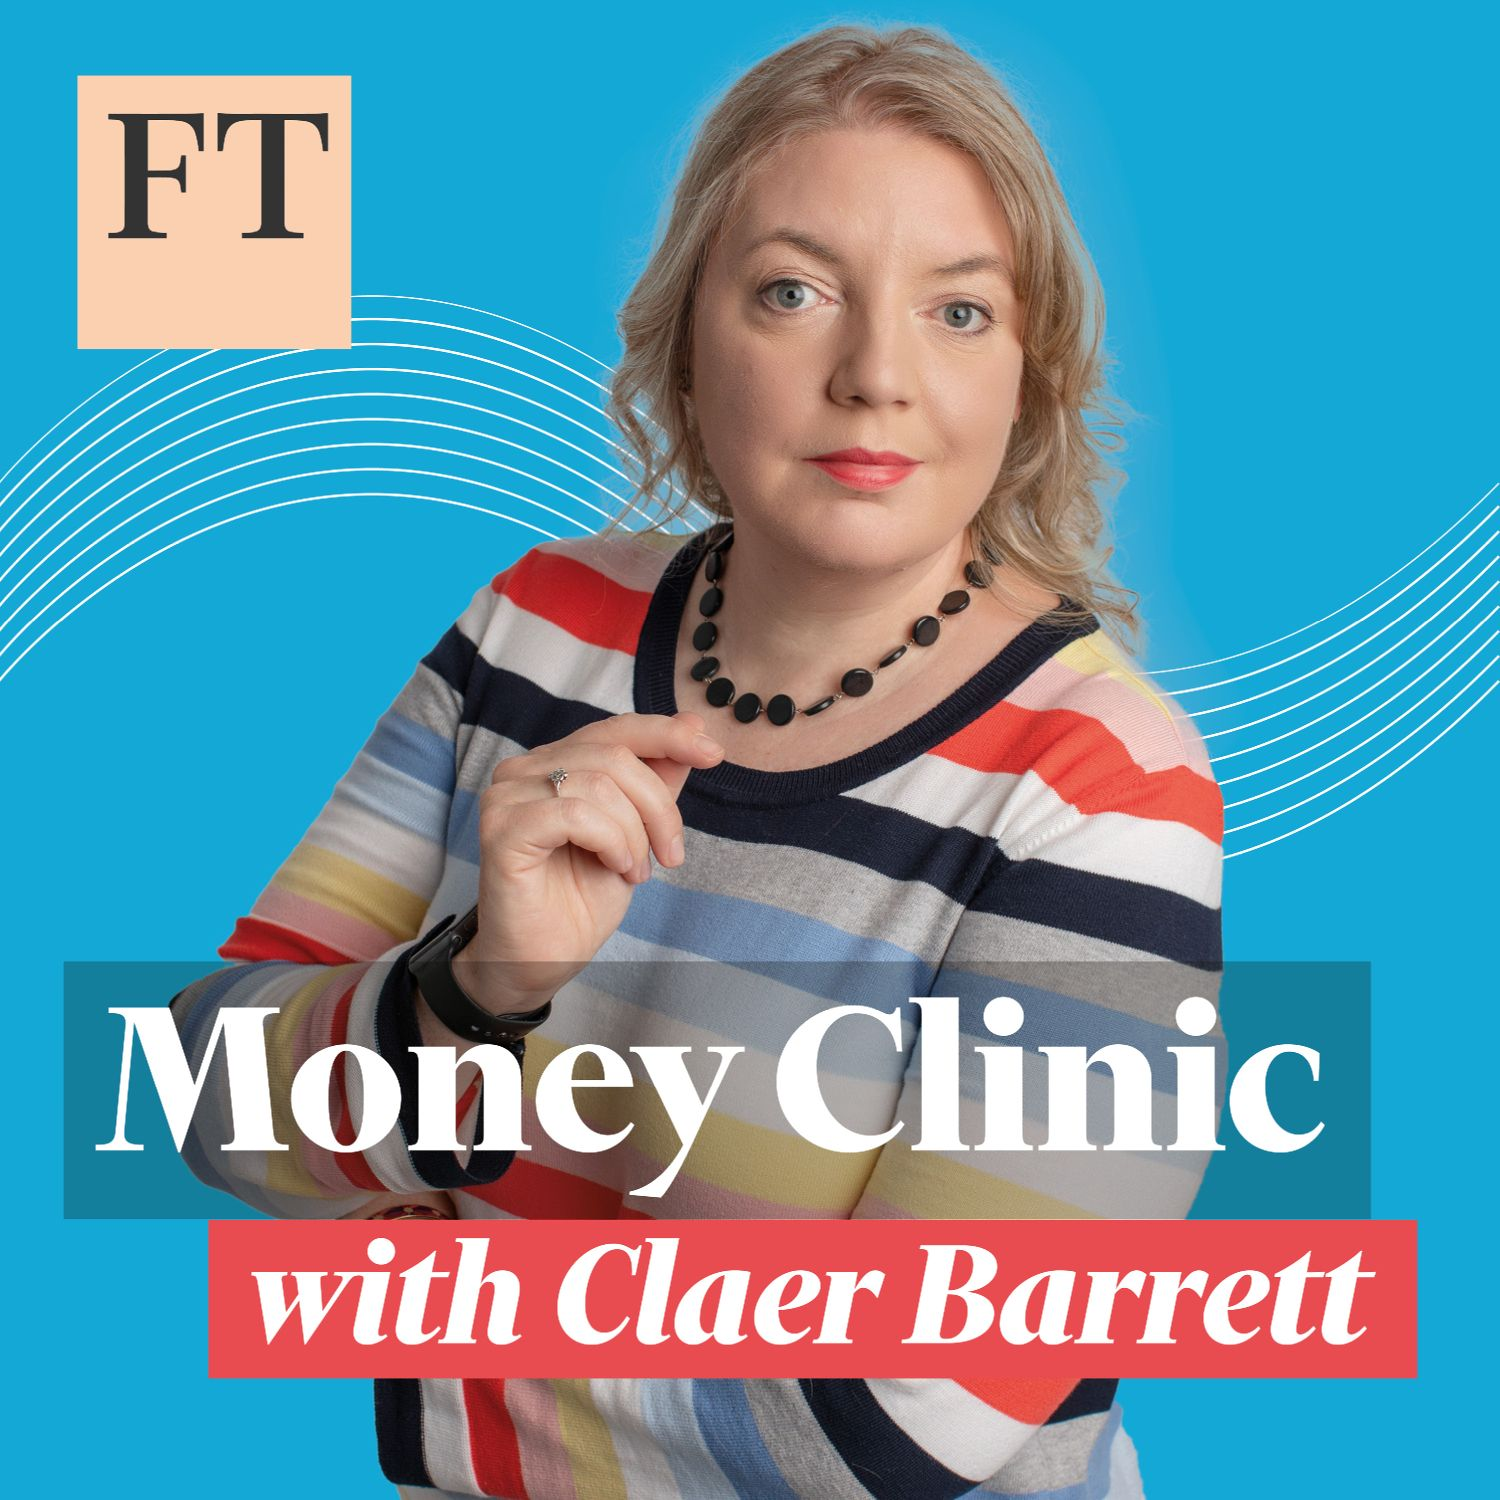 Money Clinic with Claer Barrett